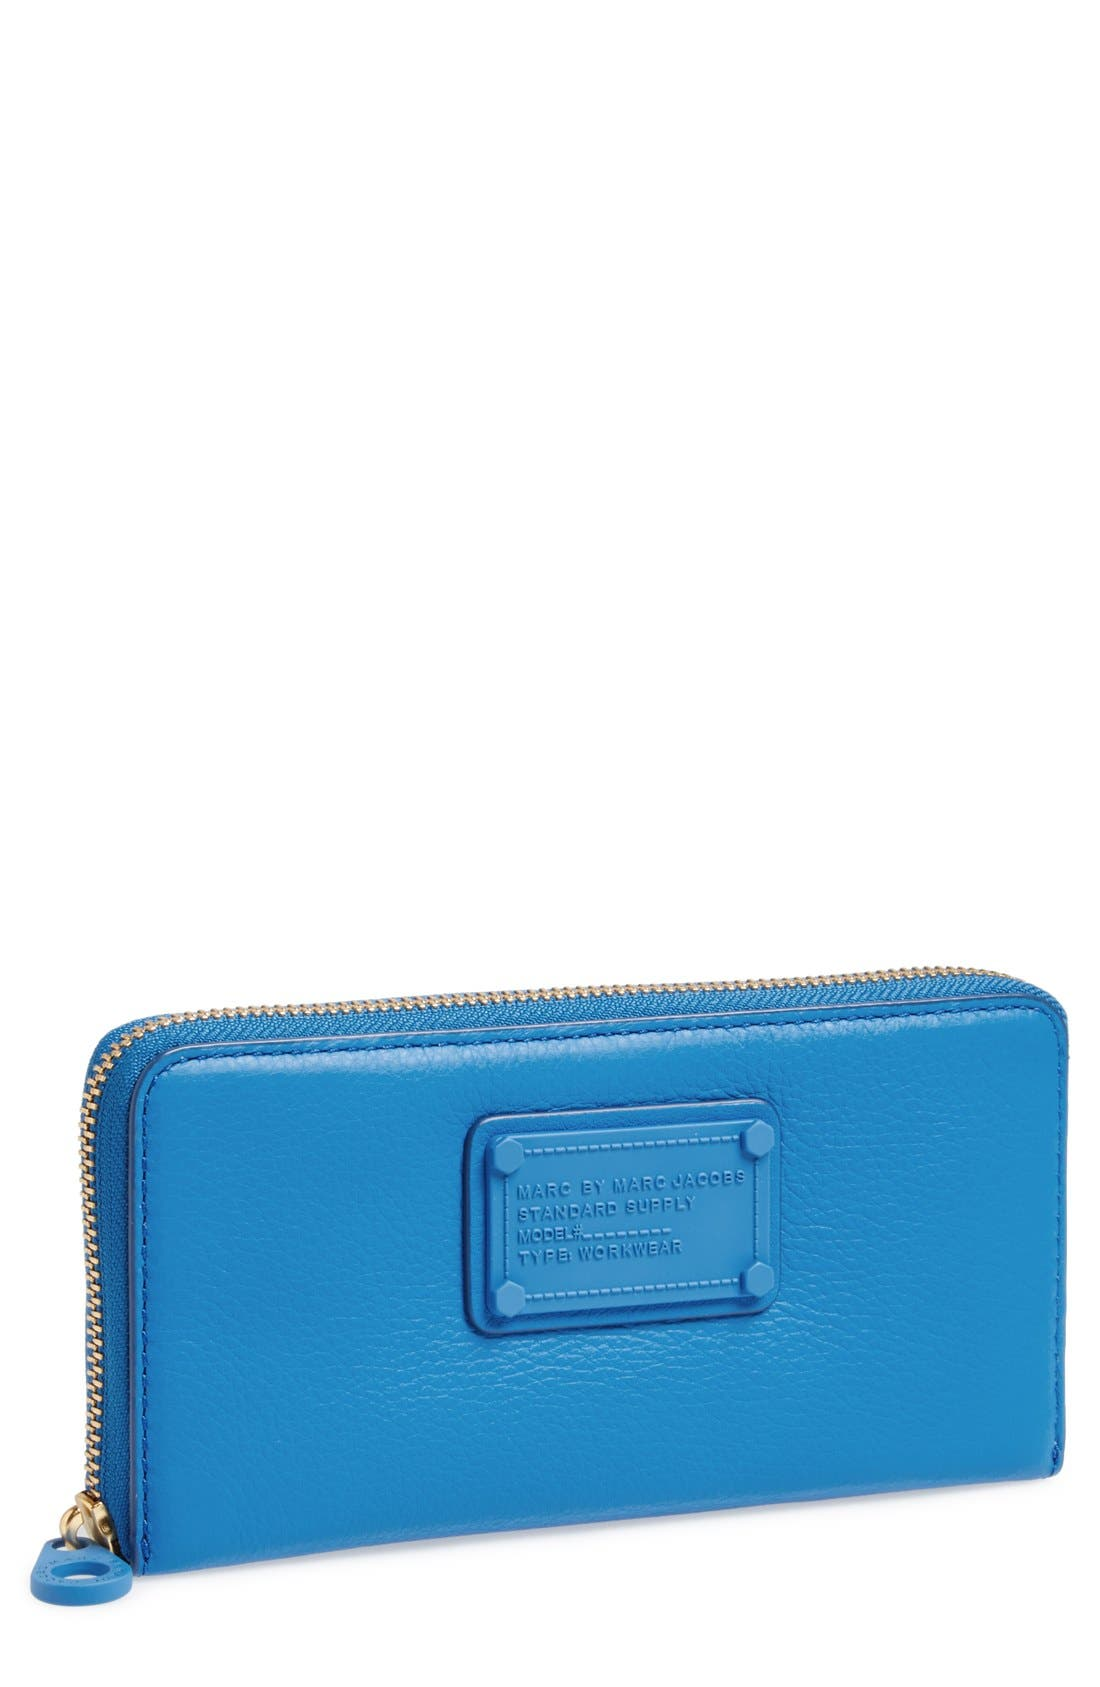 Main Image - MARC BY MARC JACOBS 'Electro Q - Vertical Zippy' Leather Wallet